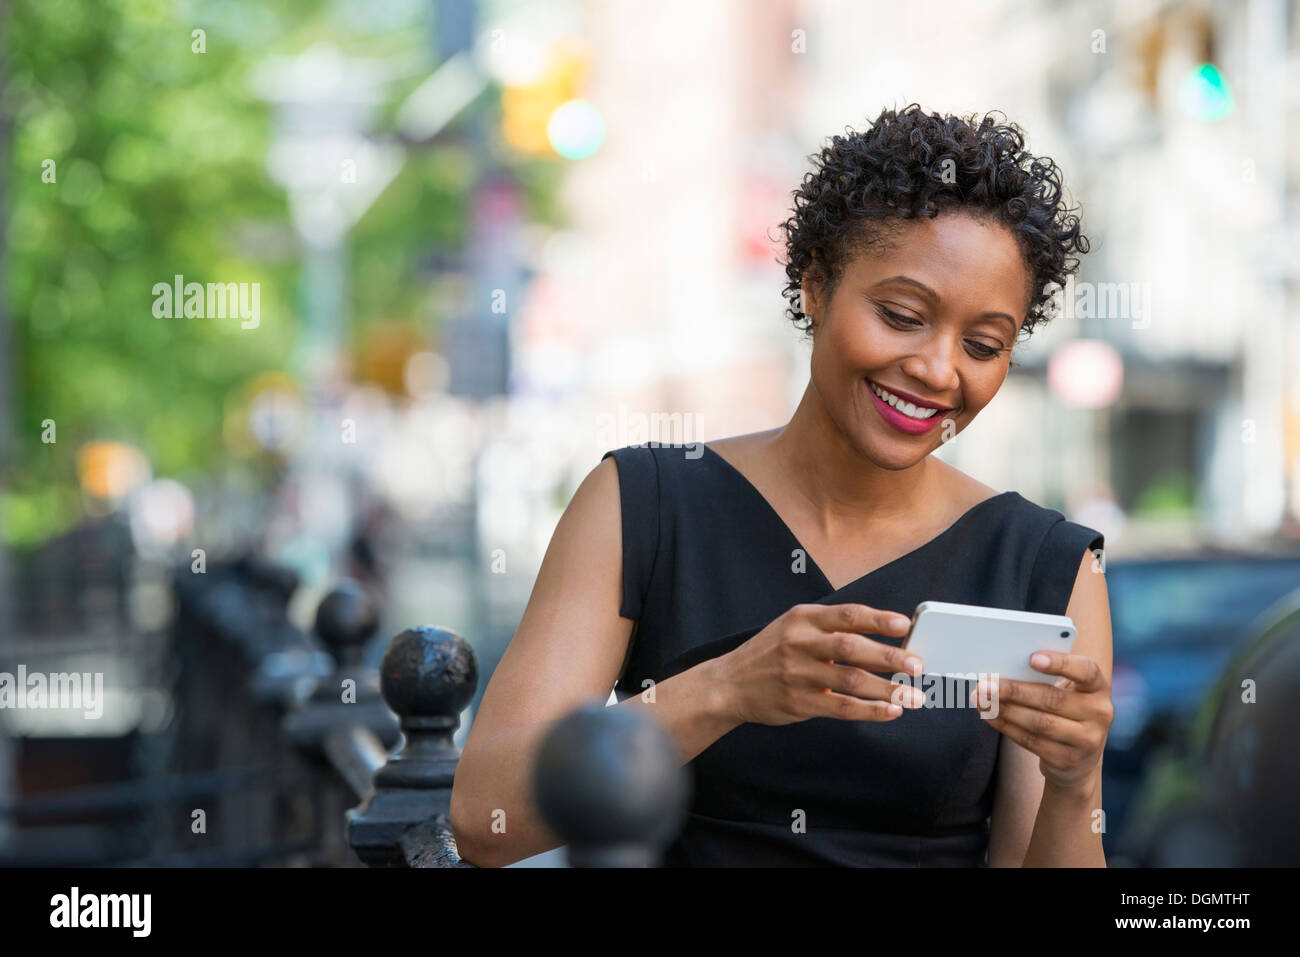 People on the move. A woman in a black dress on a city street, checking her phone. - Stock Image